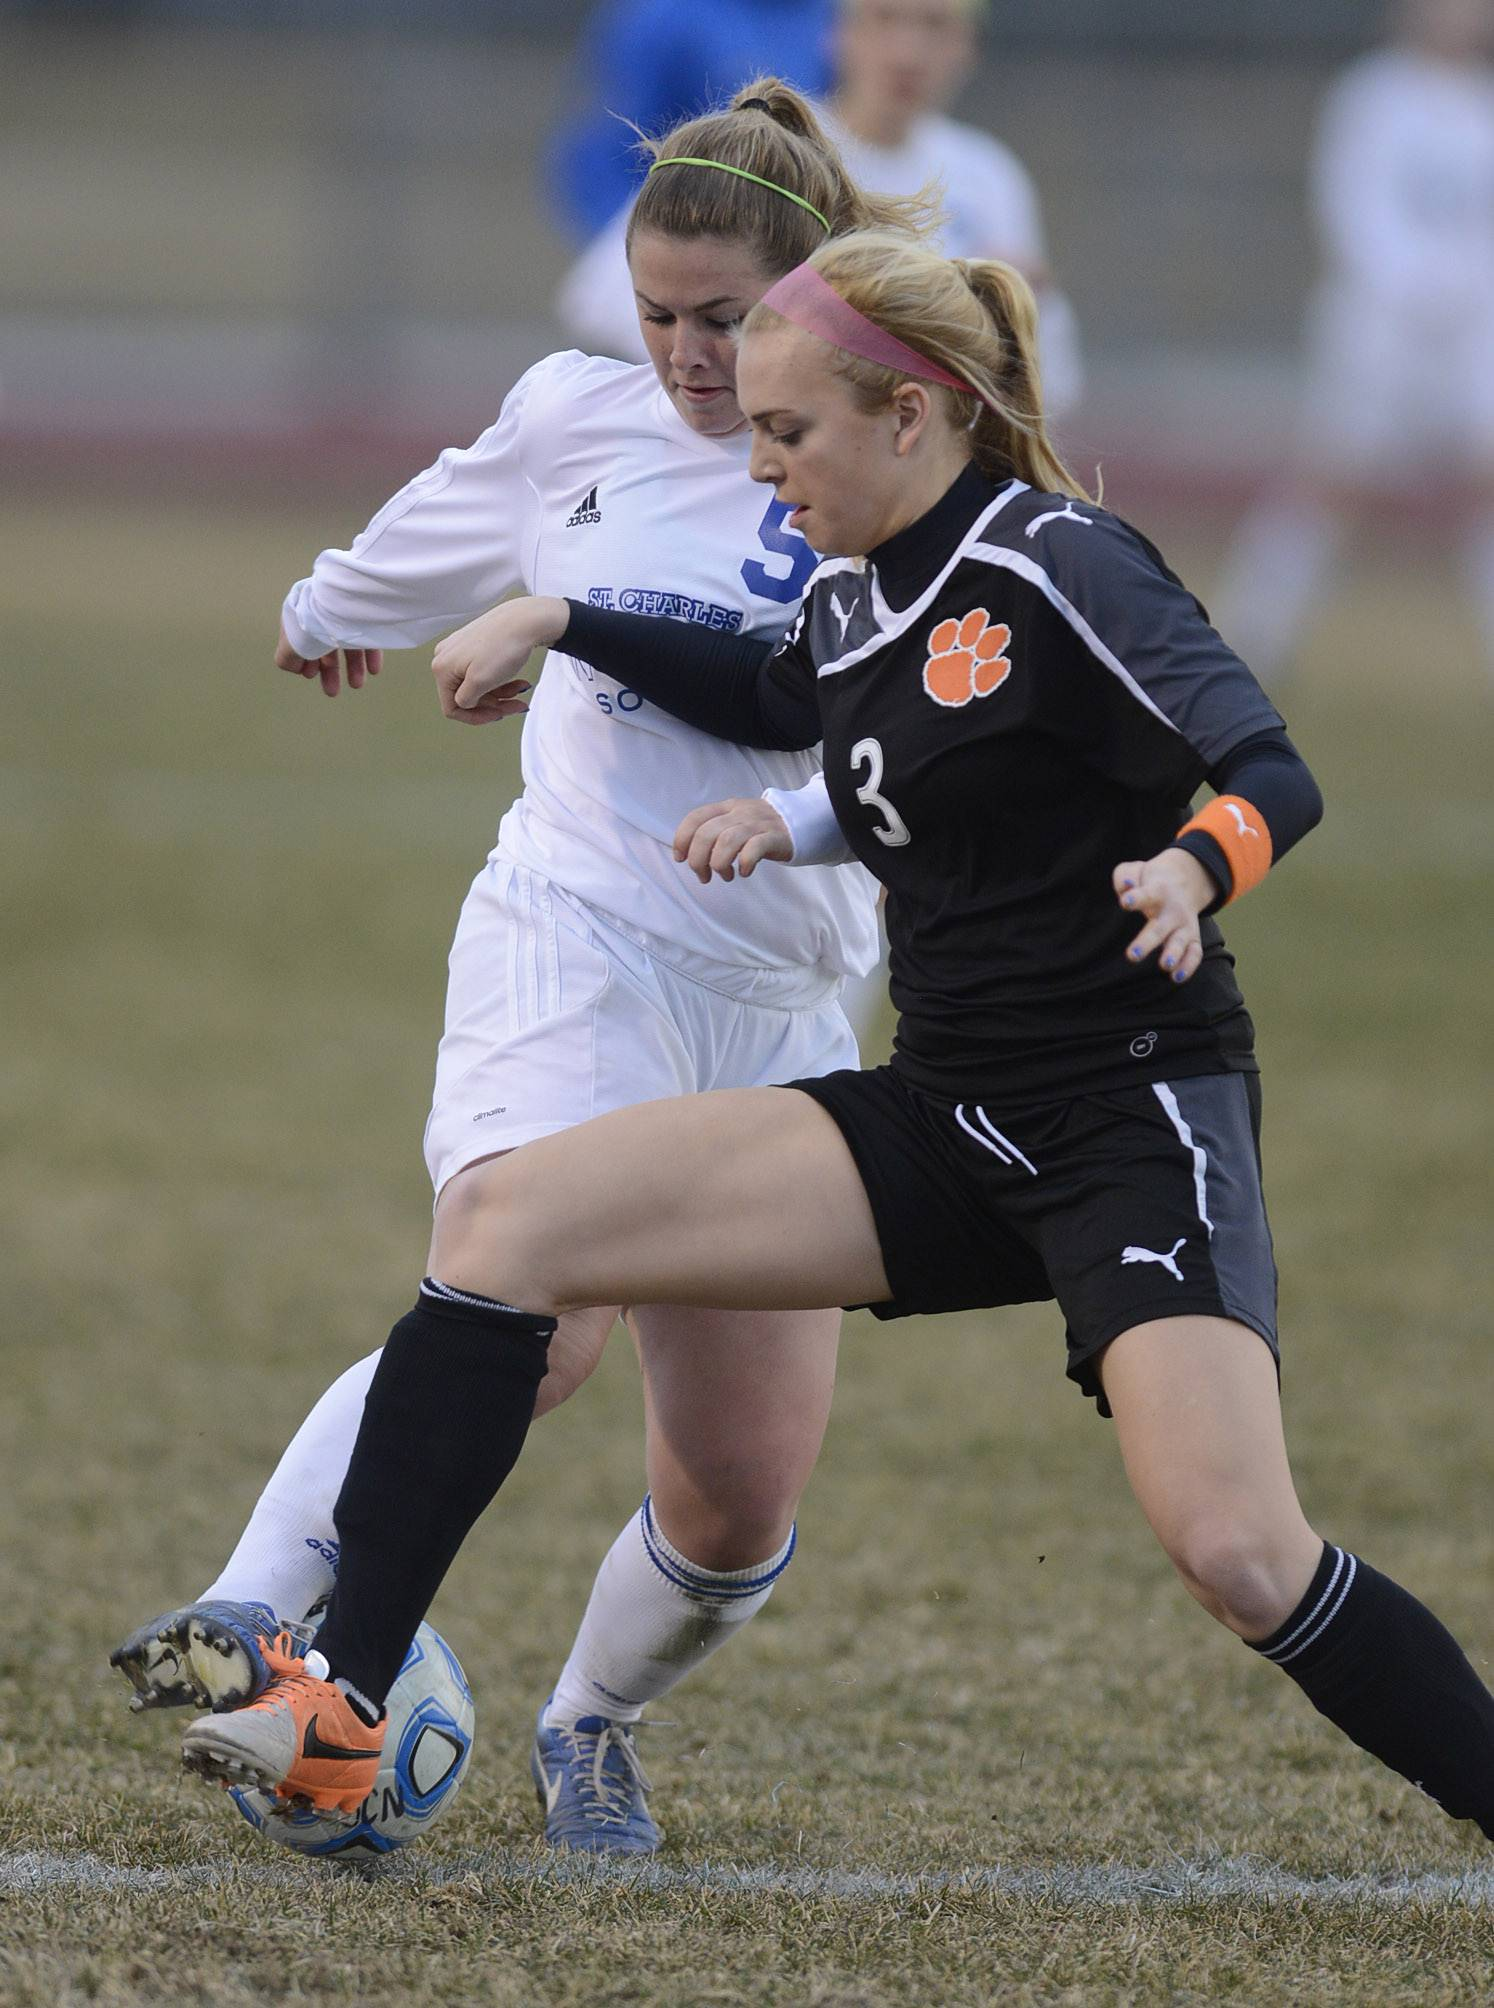 St. Charles North's Hanna Durocher, left, and Wheaton Warrenville South's Ava Fickle battle for the ball in the first half on Thursday, April 10.